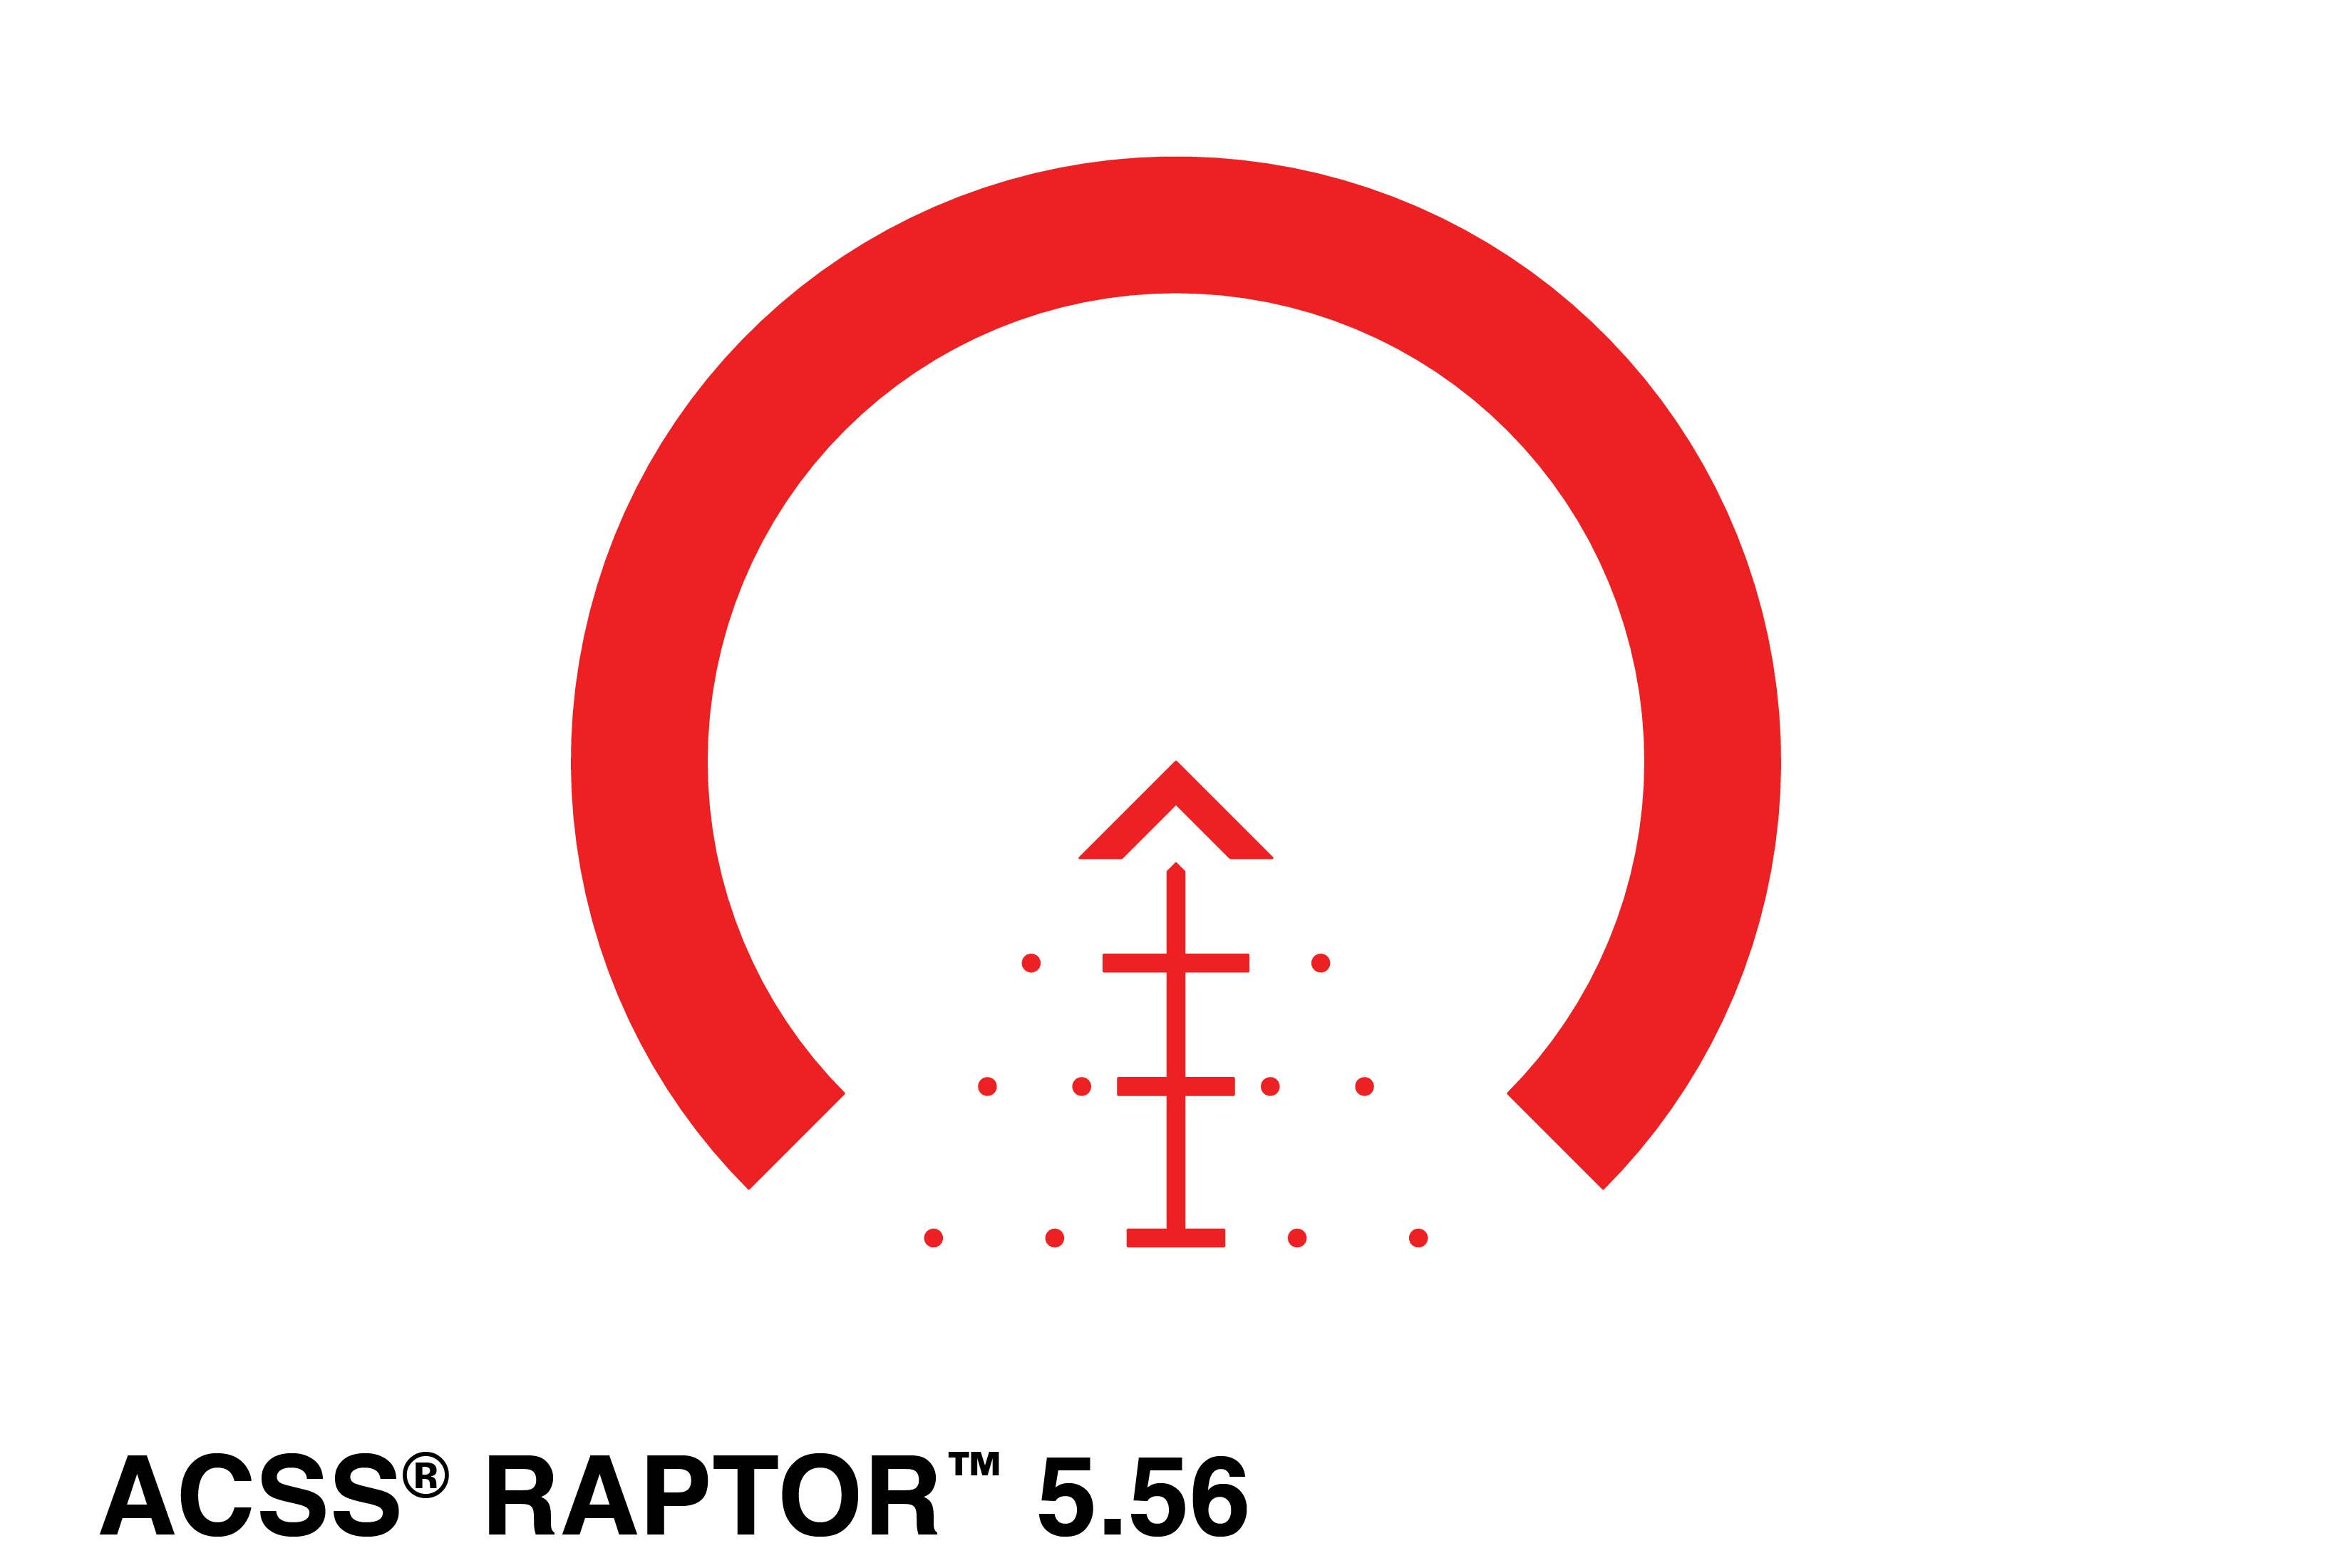 Primary Arms 1-6x24mm First Focal Plane glass etched ACSS Raptor 5.56 Reticle - Red Illumination